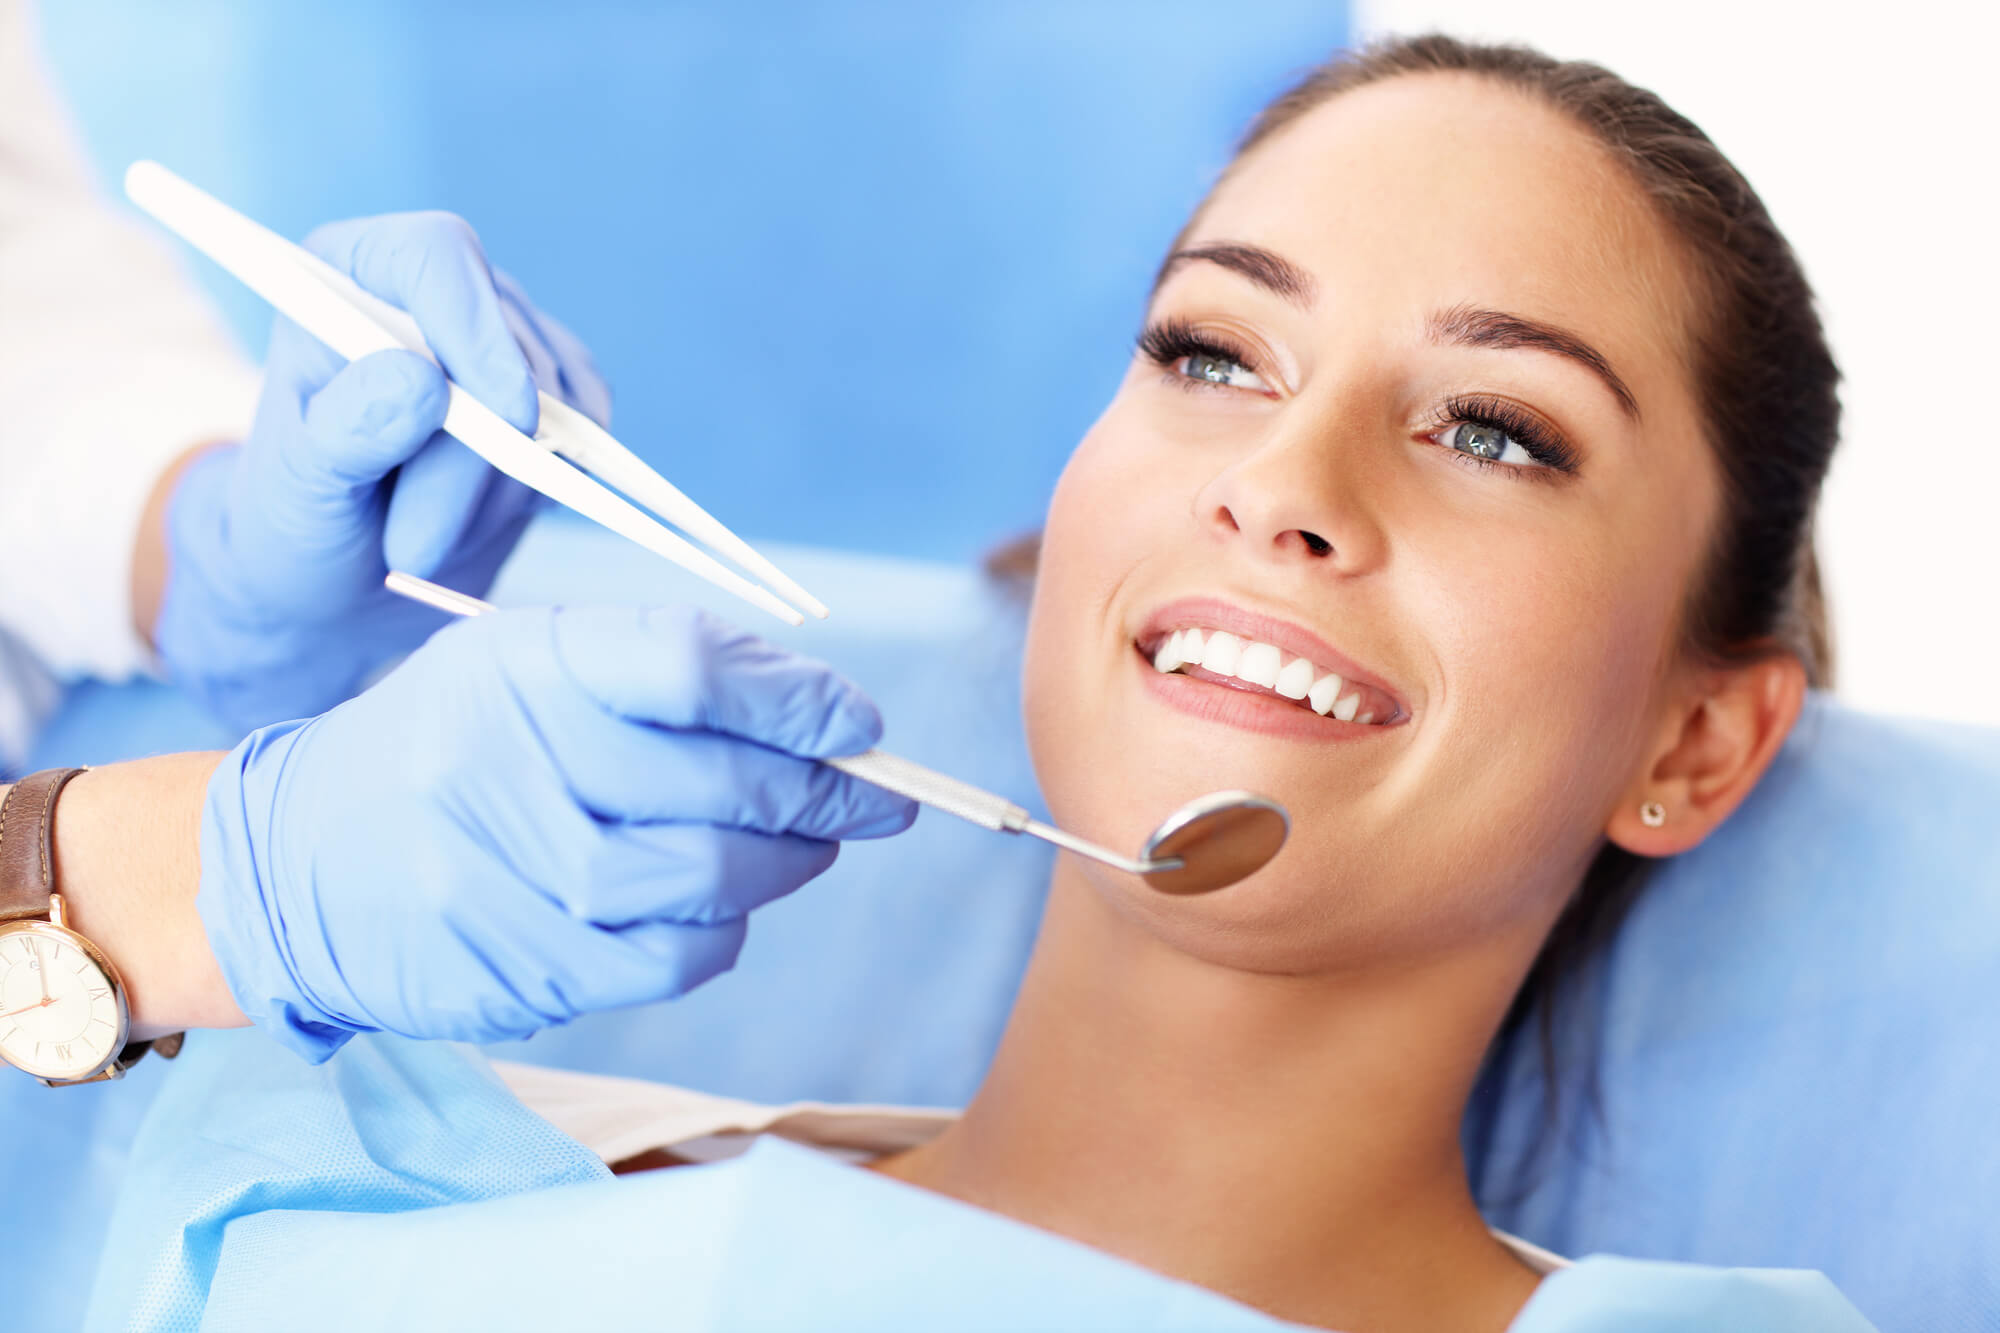 Why do I need to see an endodontist in Miami?